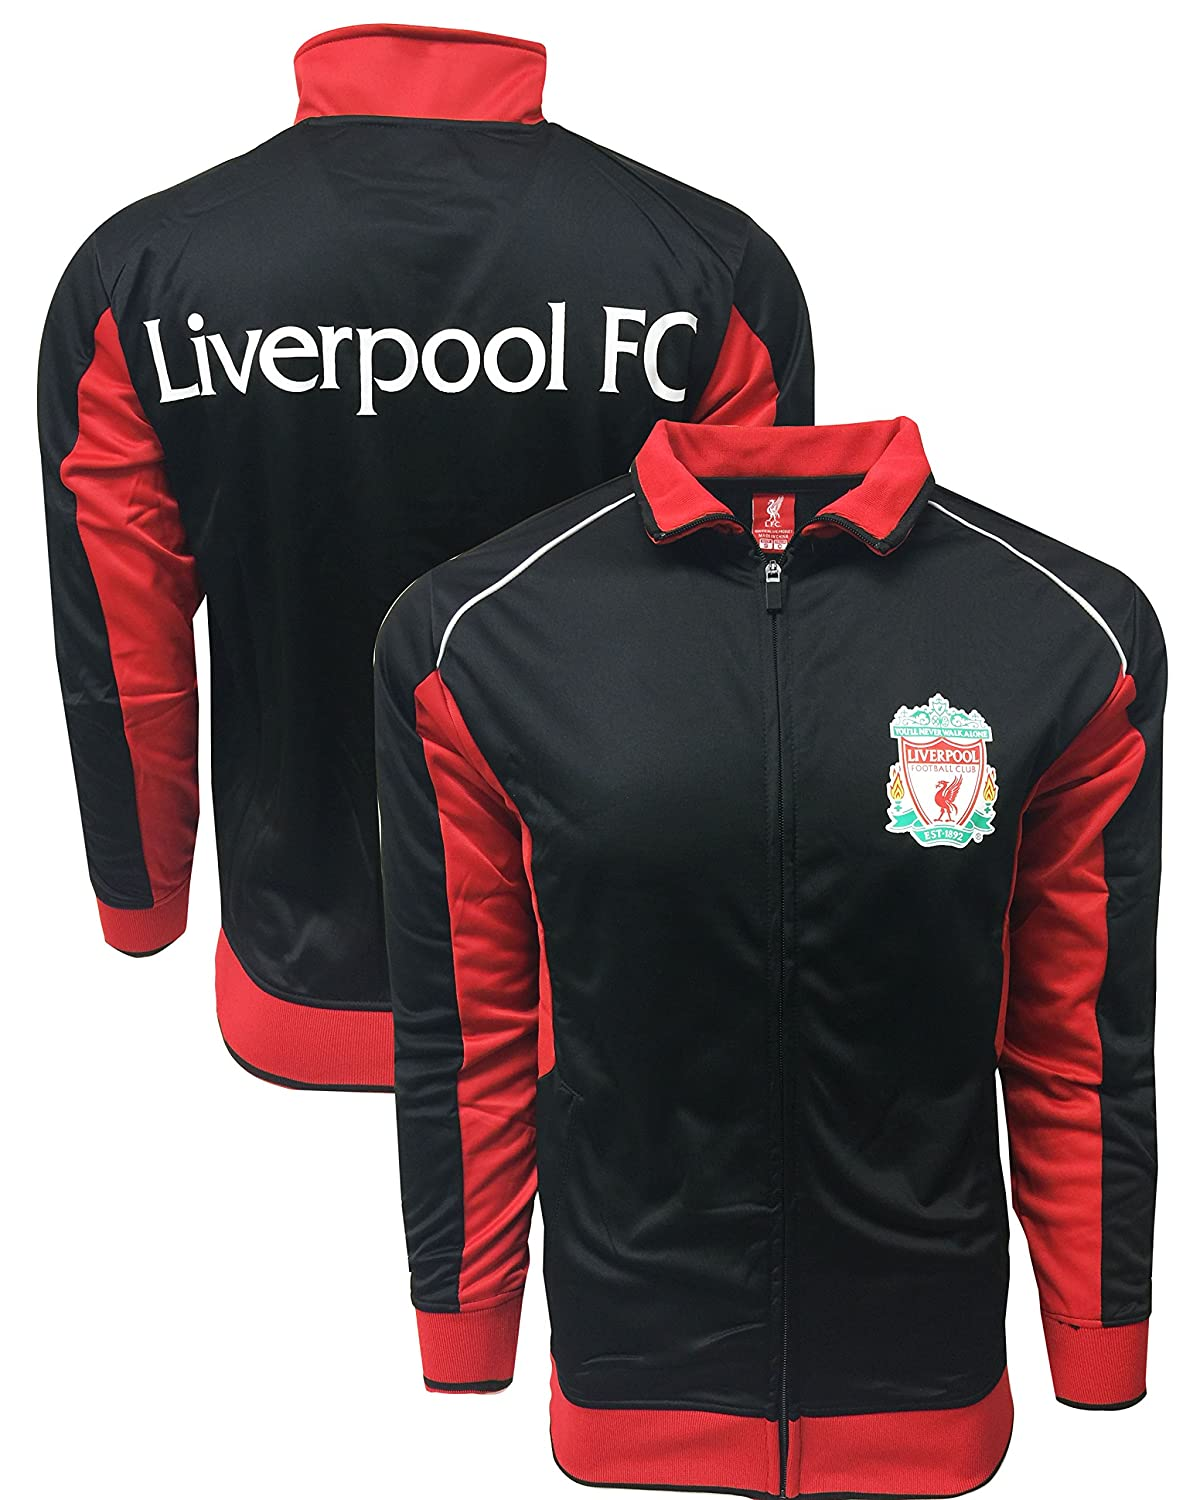 Rhinox APPAREL ボーイズ Youth Small 4-6 years Liverpool Red/Black B07FPSSQSB